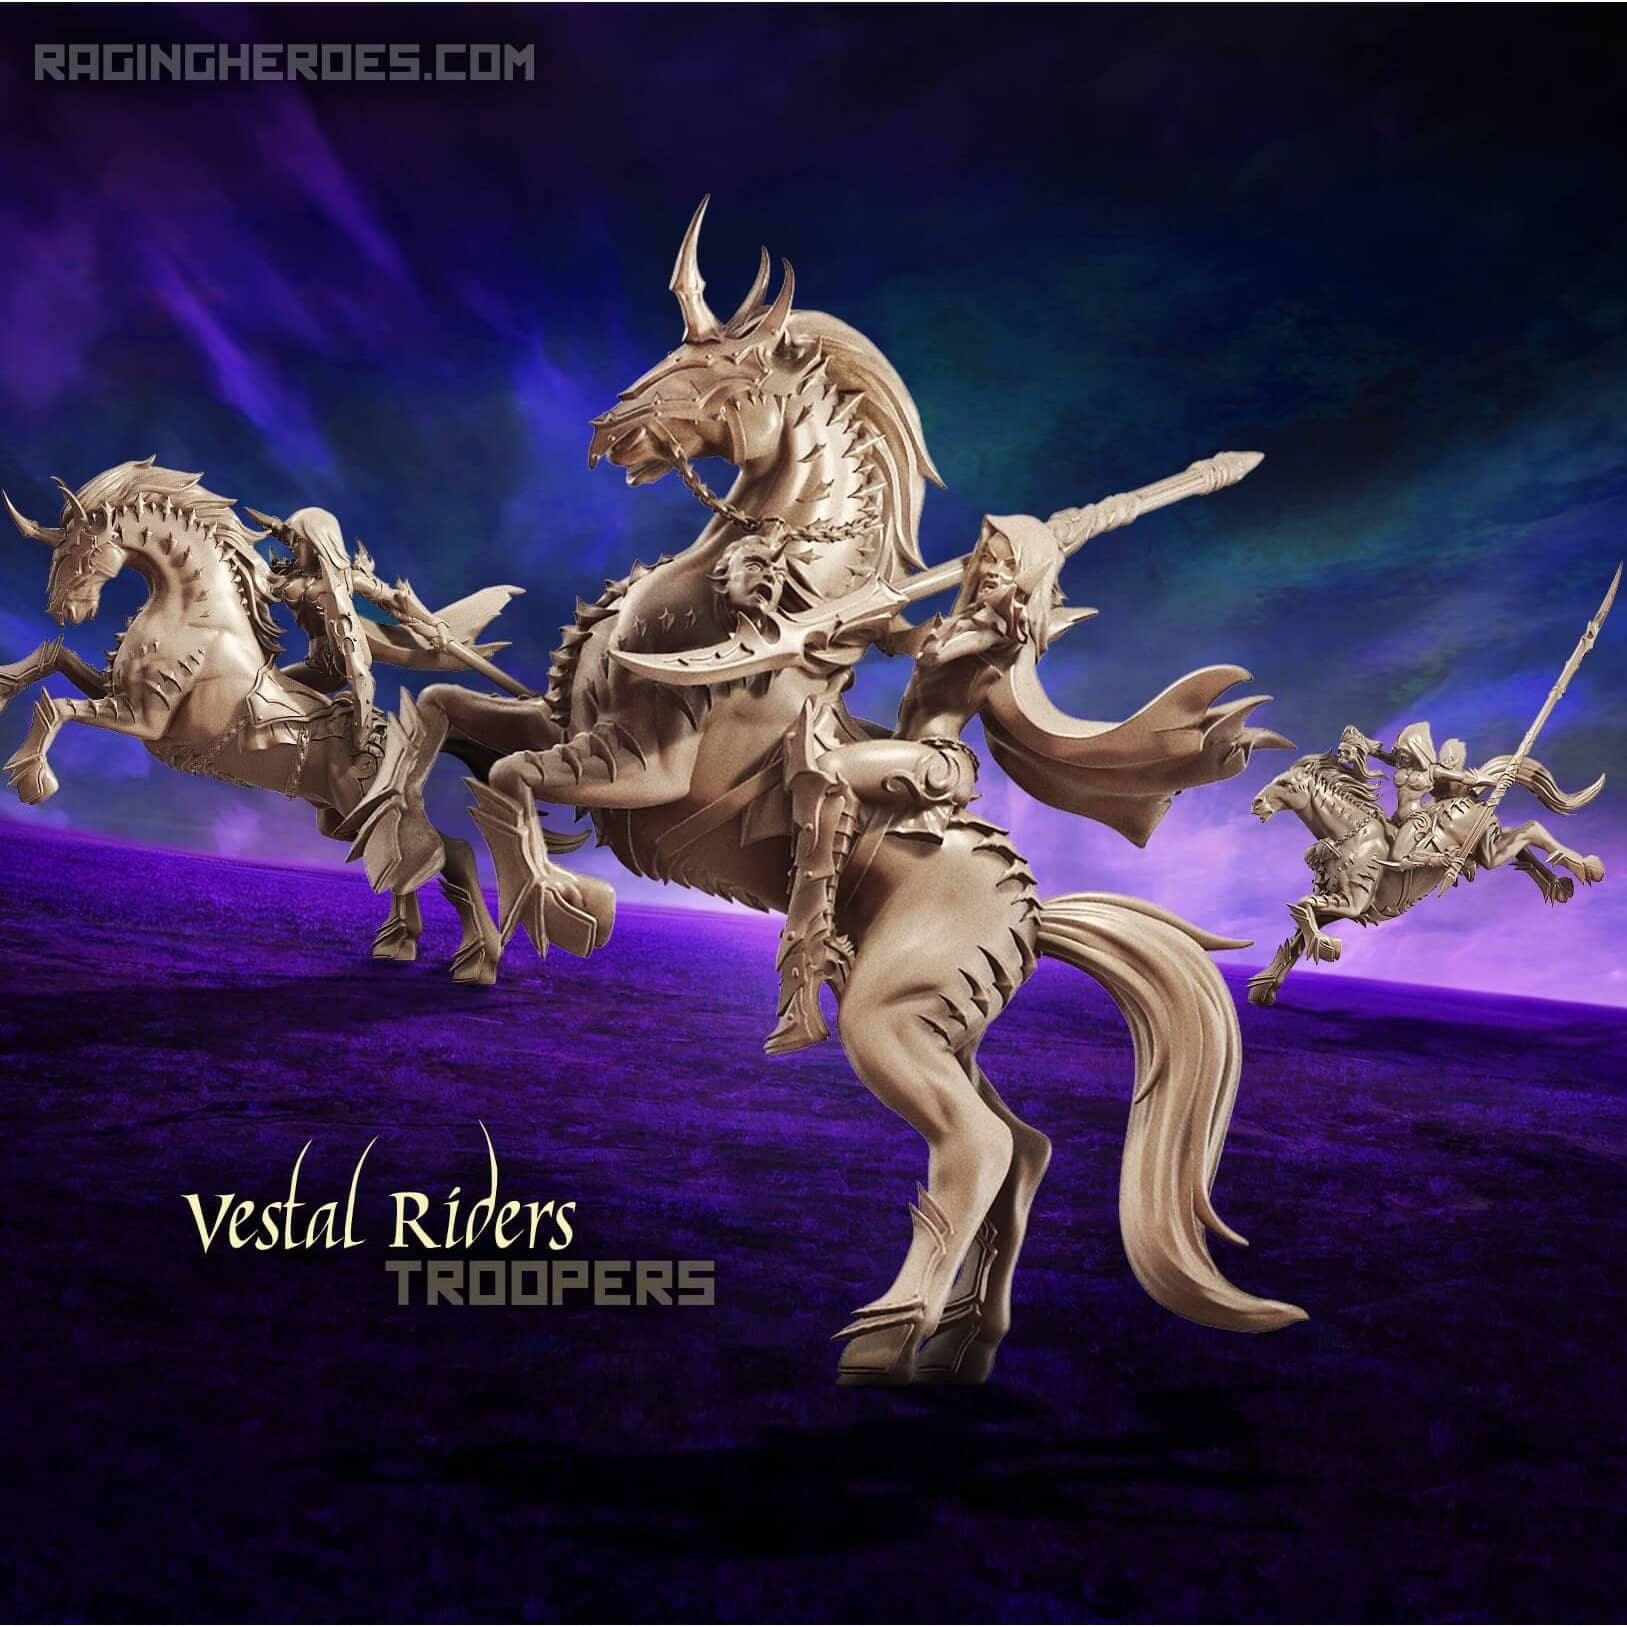 Vestal Riders - TROOPS (DE - F) - Raging Heroes